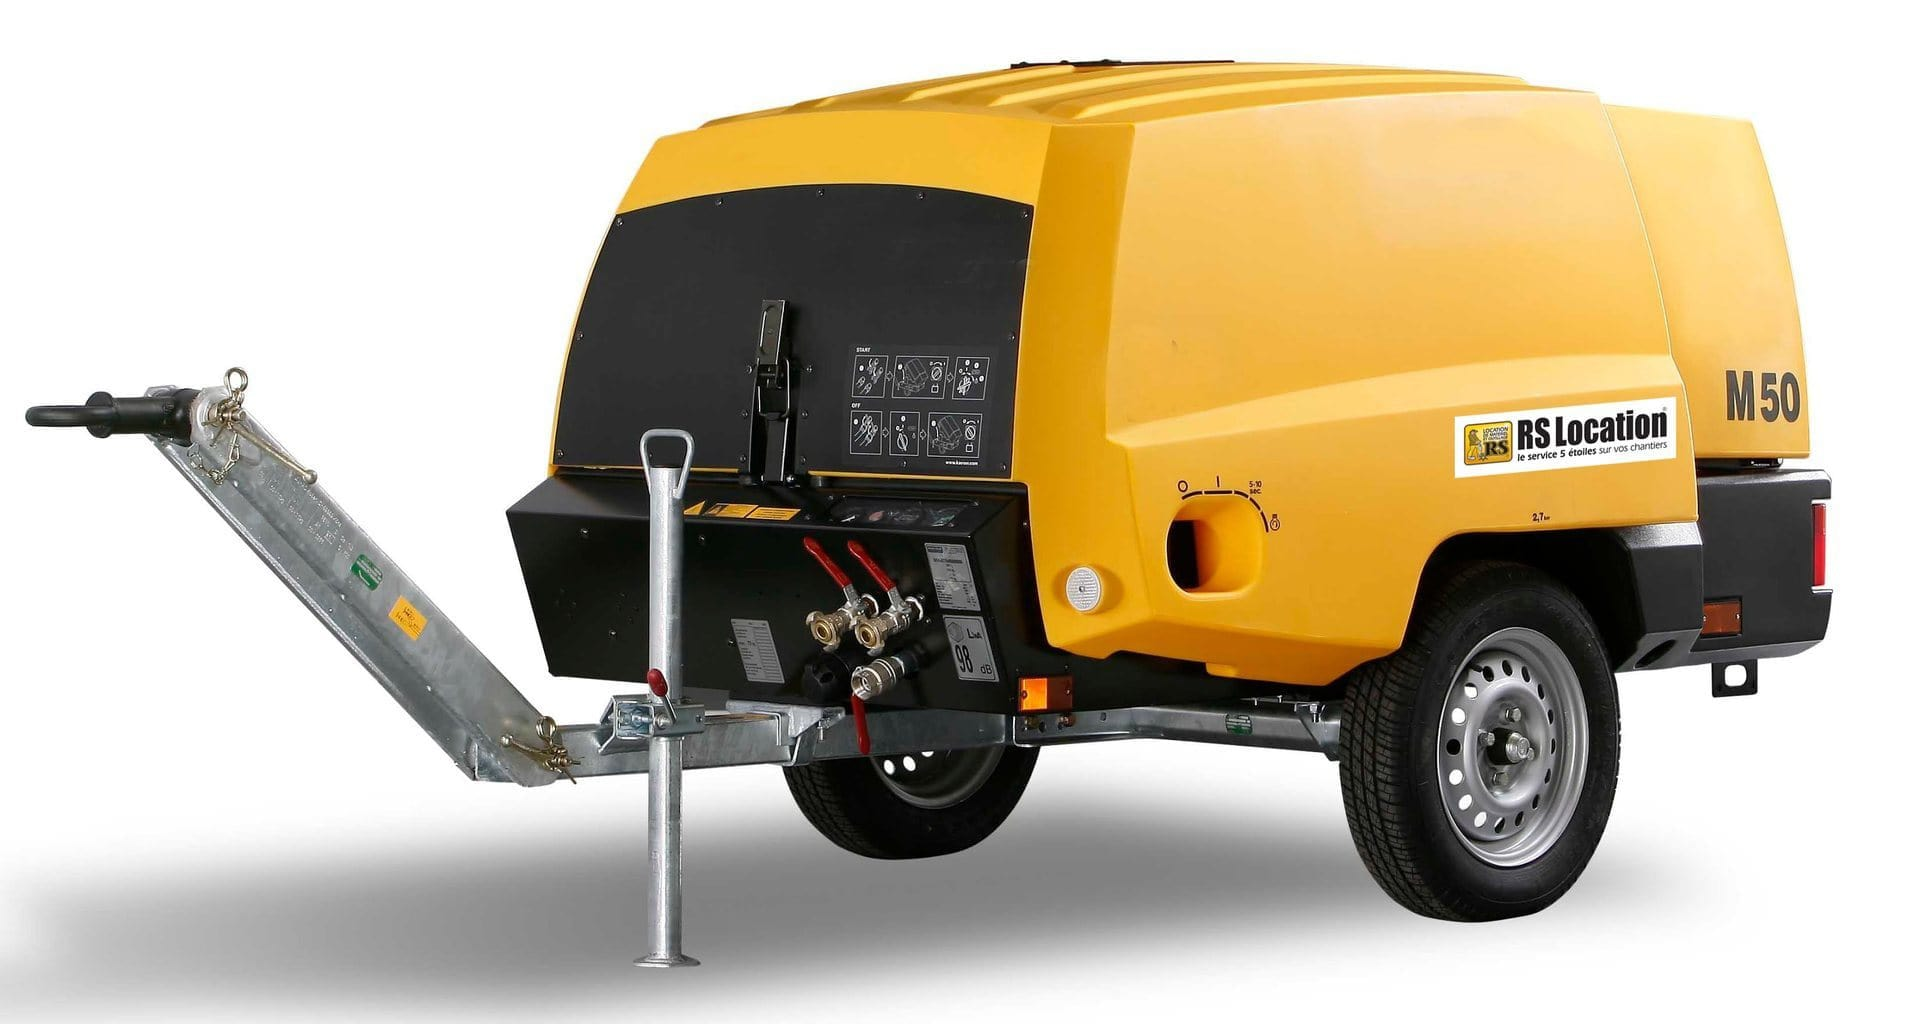 compresseur d'air diesel 5600 l min